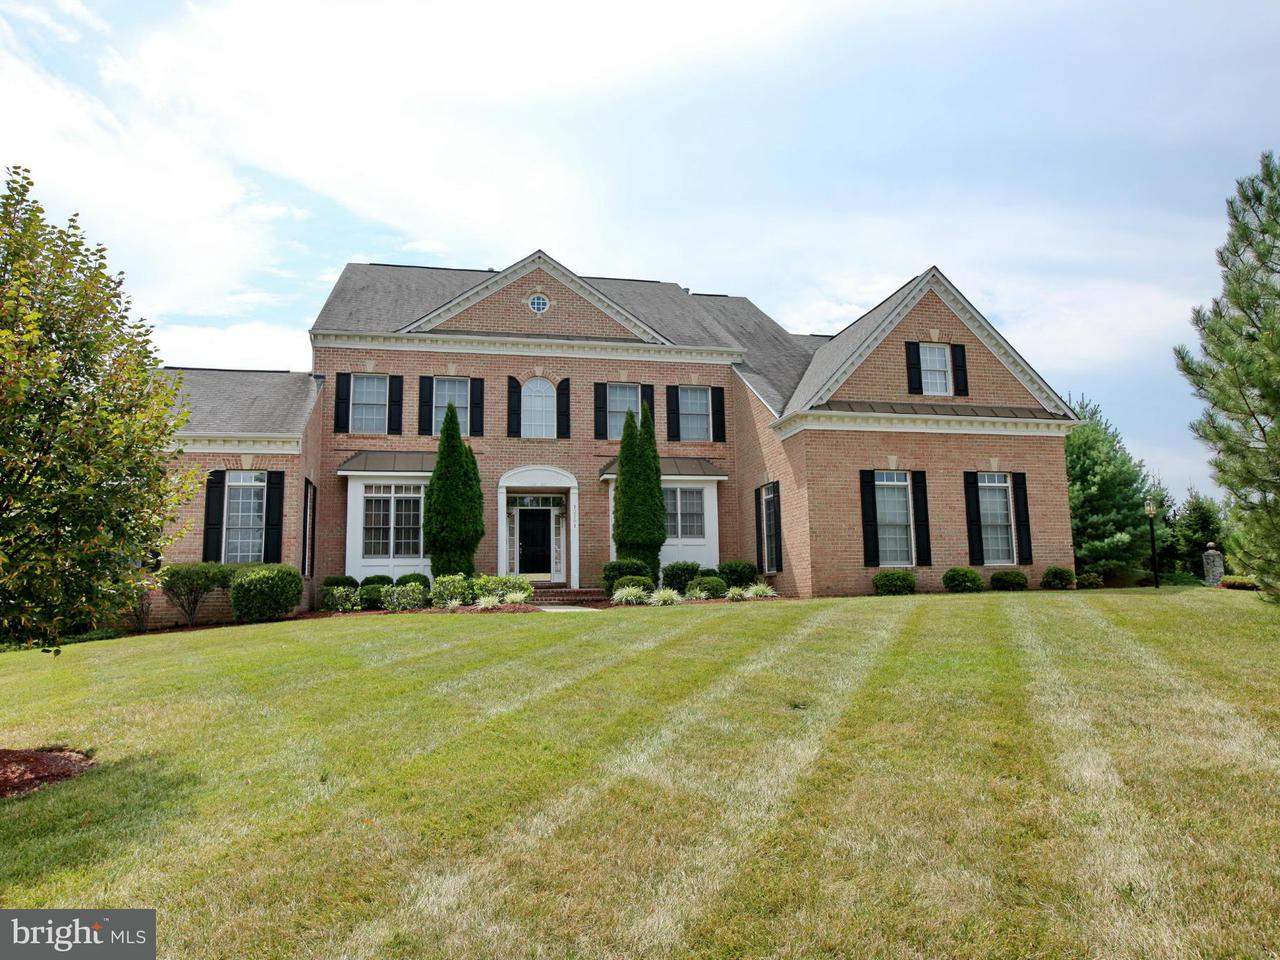 Casa Unifamiliar por un Venta en 12701 WILLOW MARSH Lane 12701 WILLOW MARSH Lane Bowie, Maryland 20720 Estados Unidos